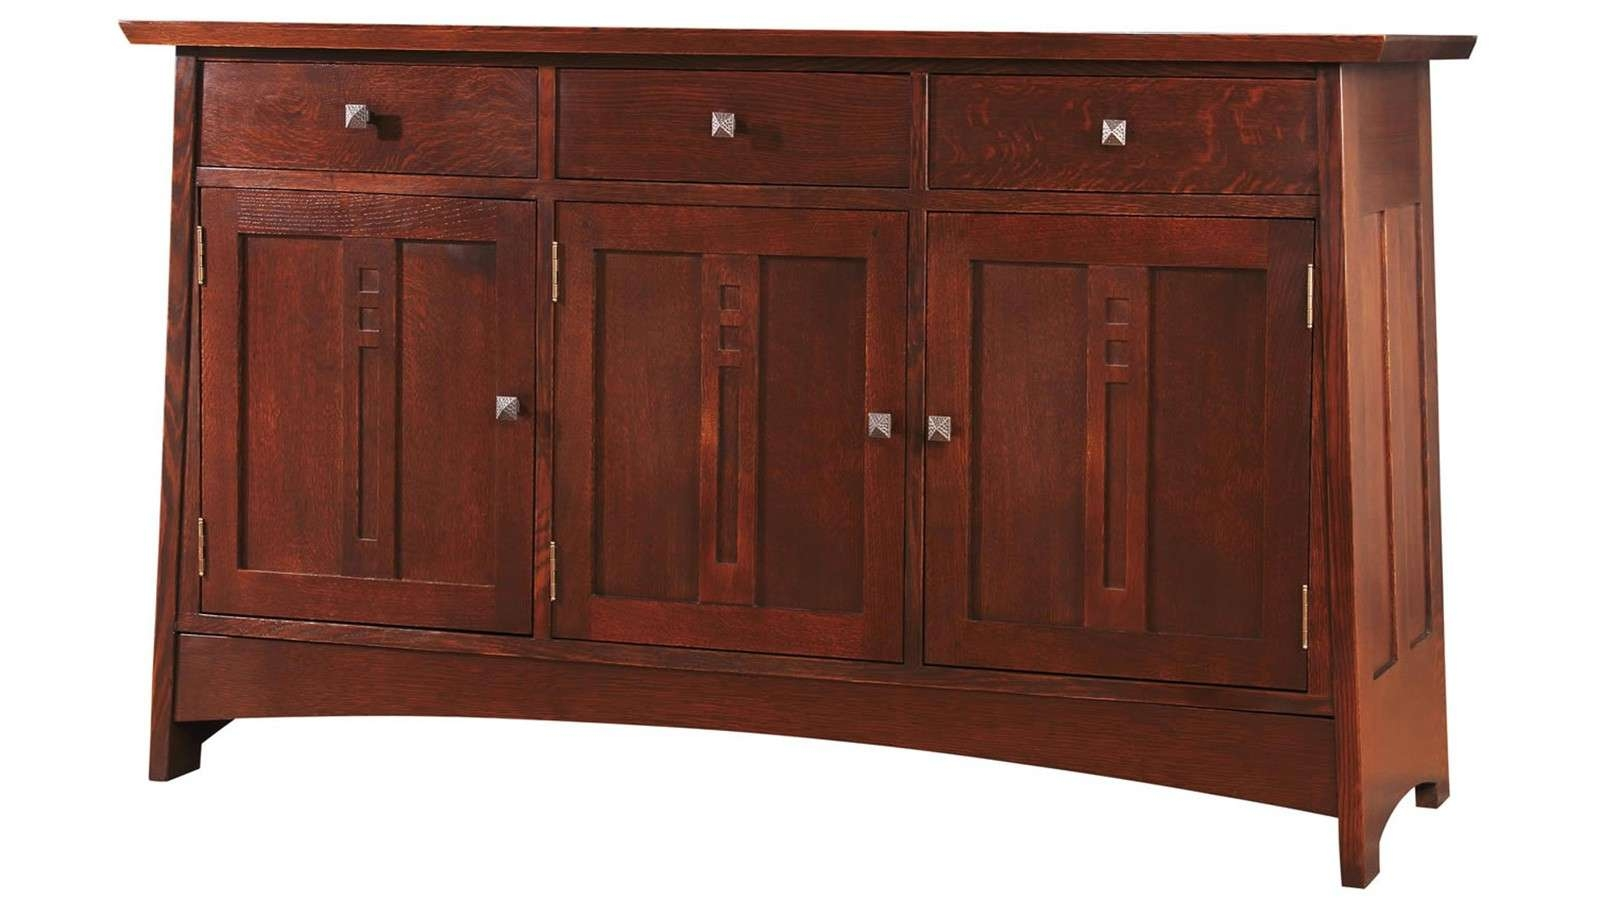 Sideboards & Hutches | Gallery Furniture Regarding Sideboards And Hutches (View 15 of 20)